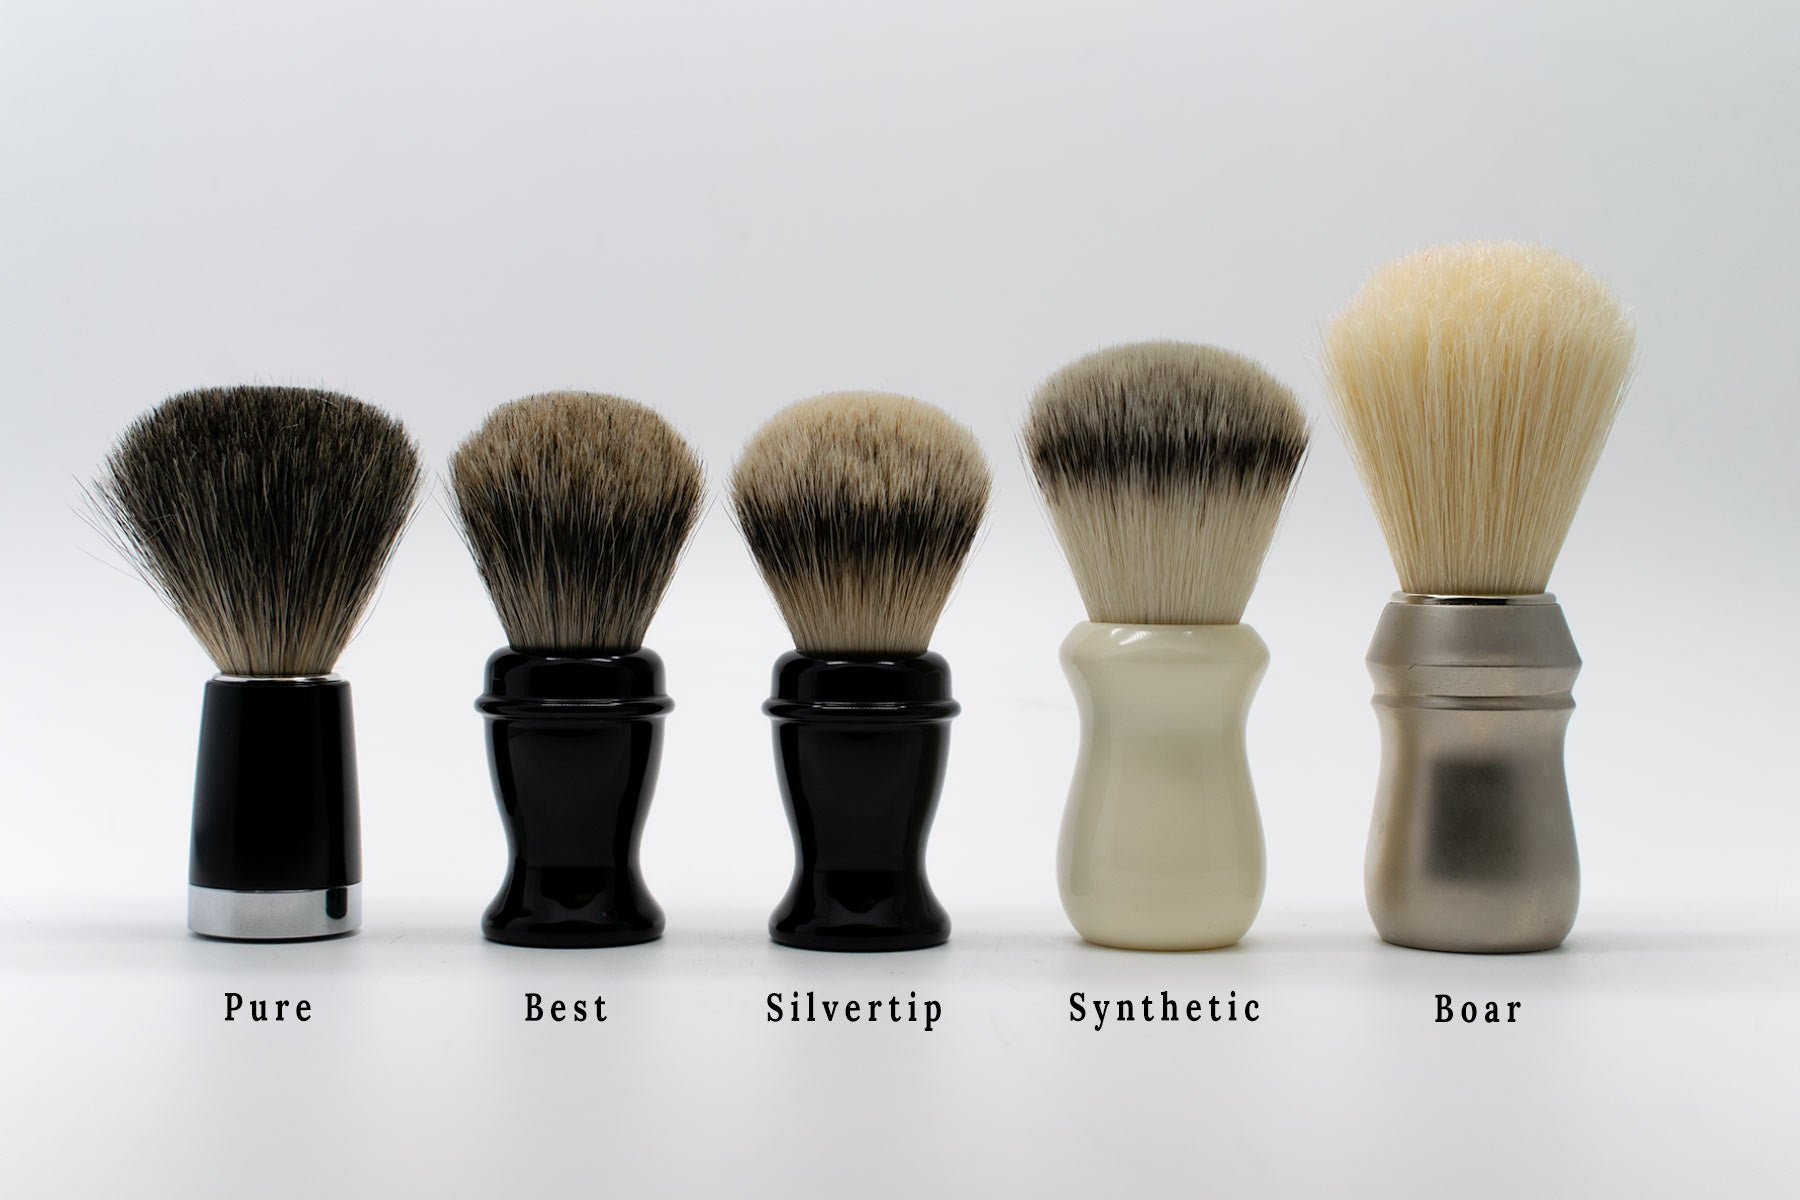 Shaving brush bristle types